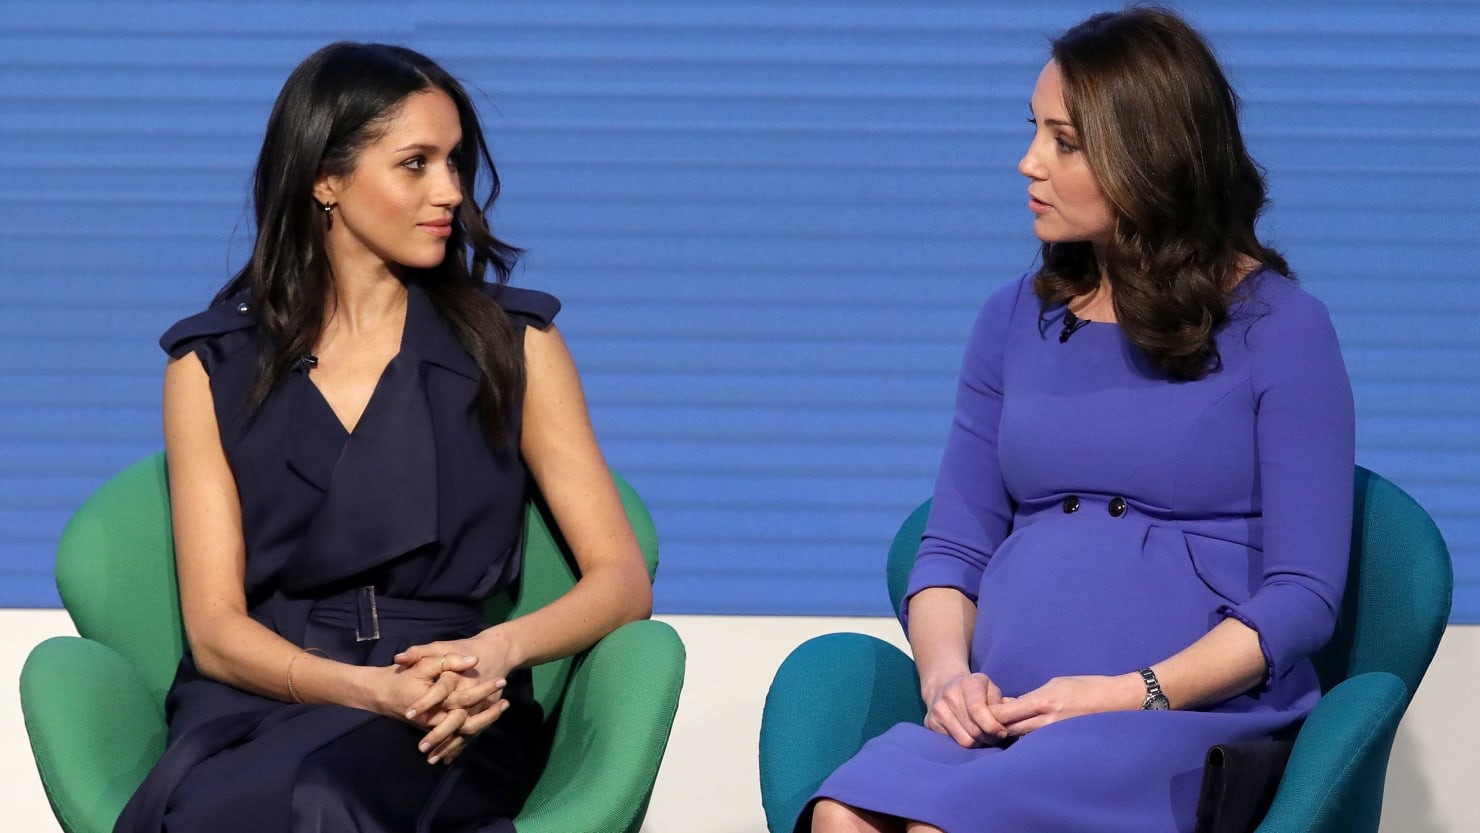 meghan markle and kate middleton tension could be behind harry and